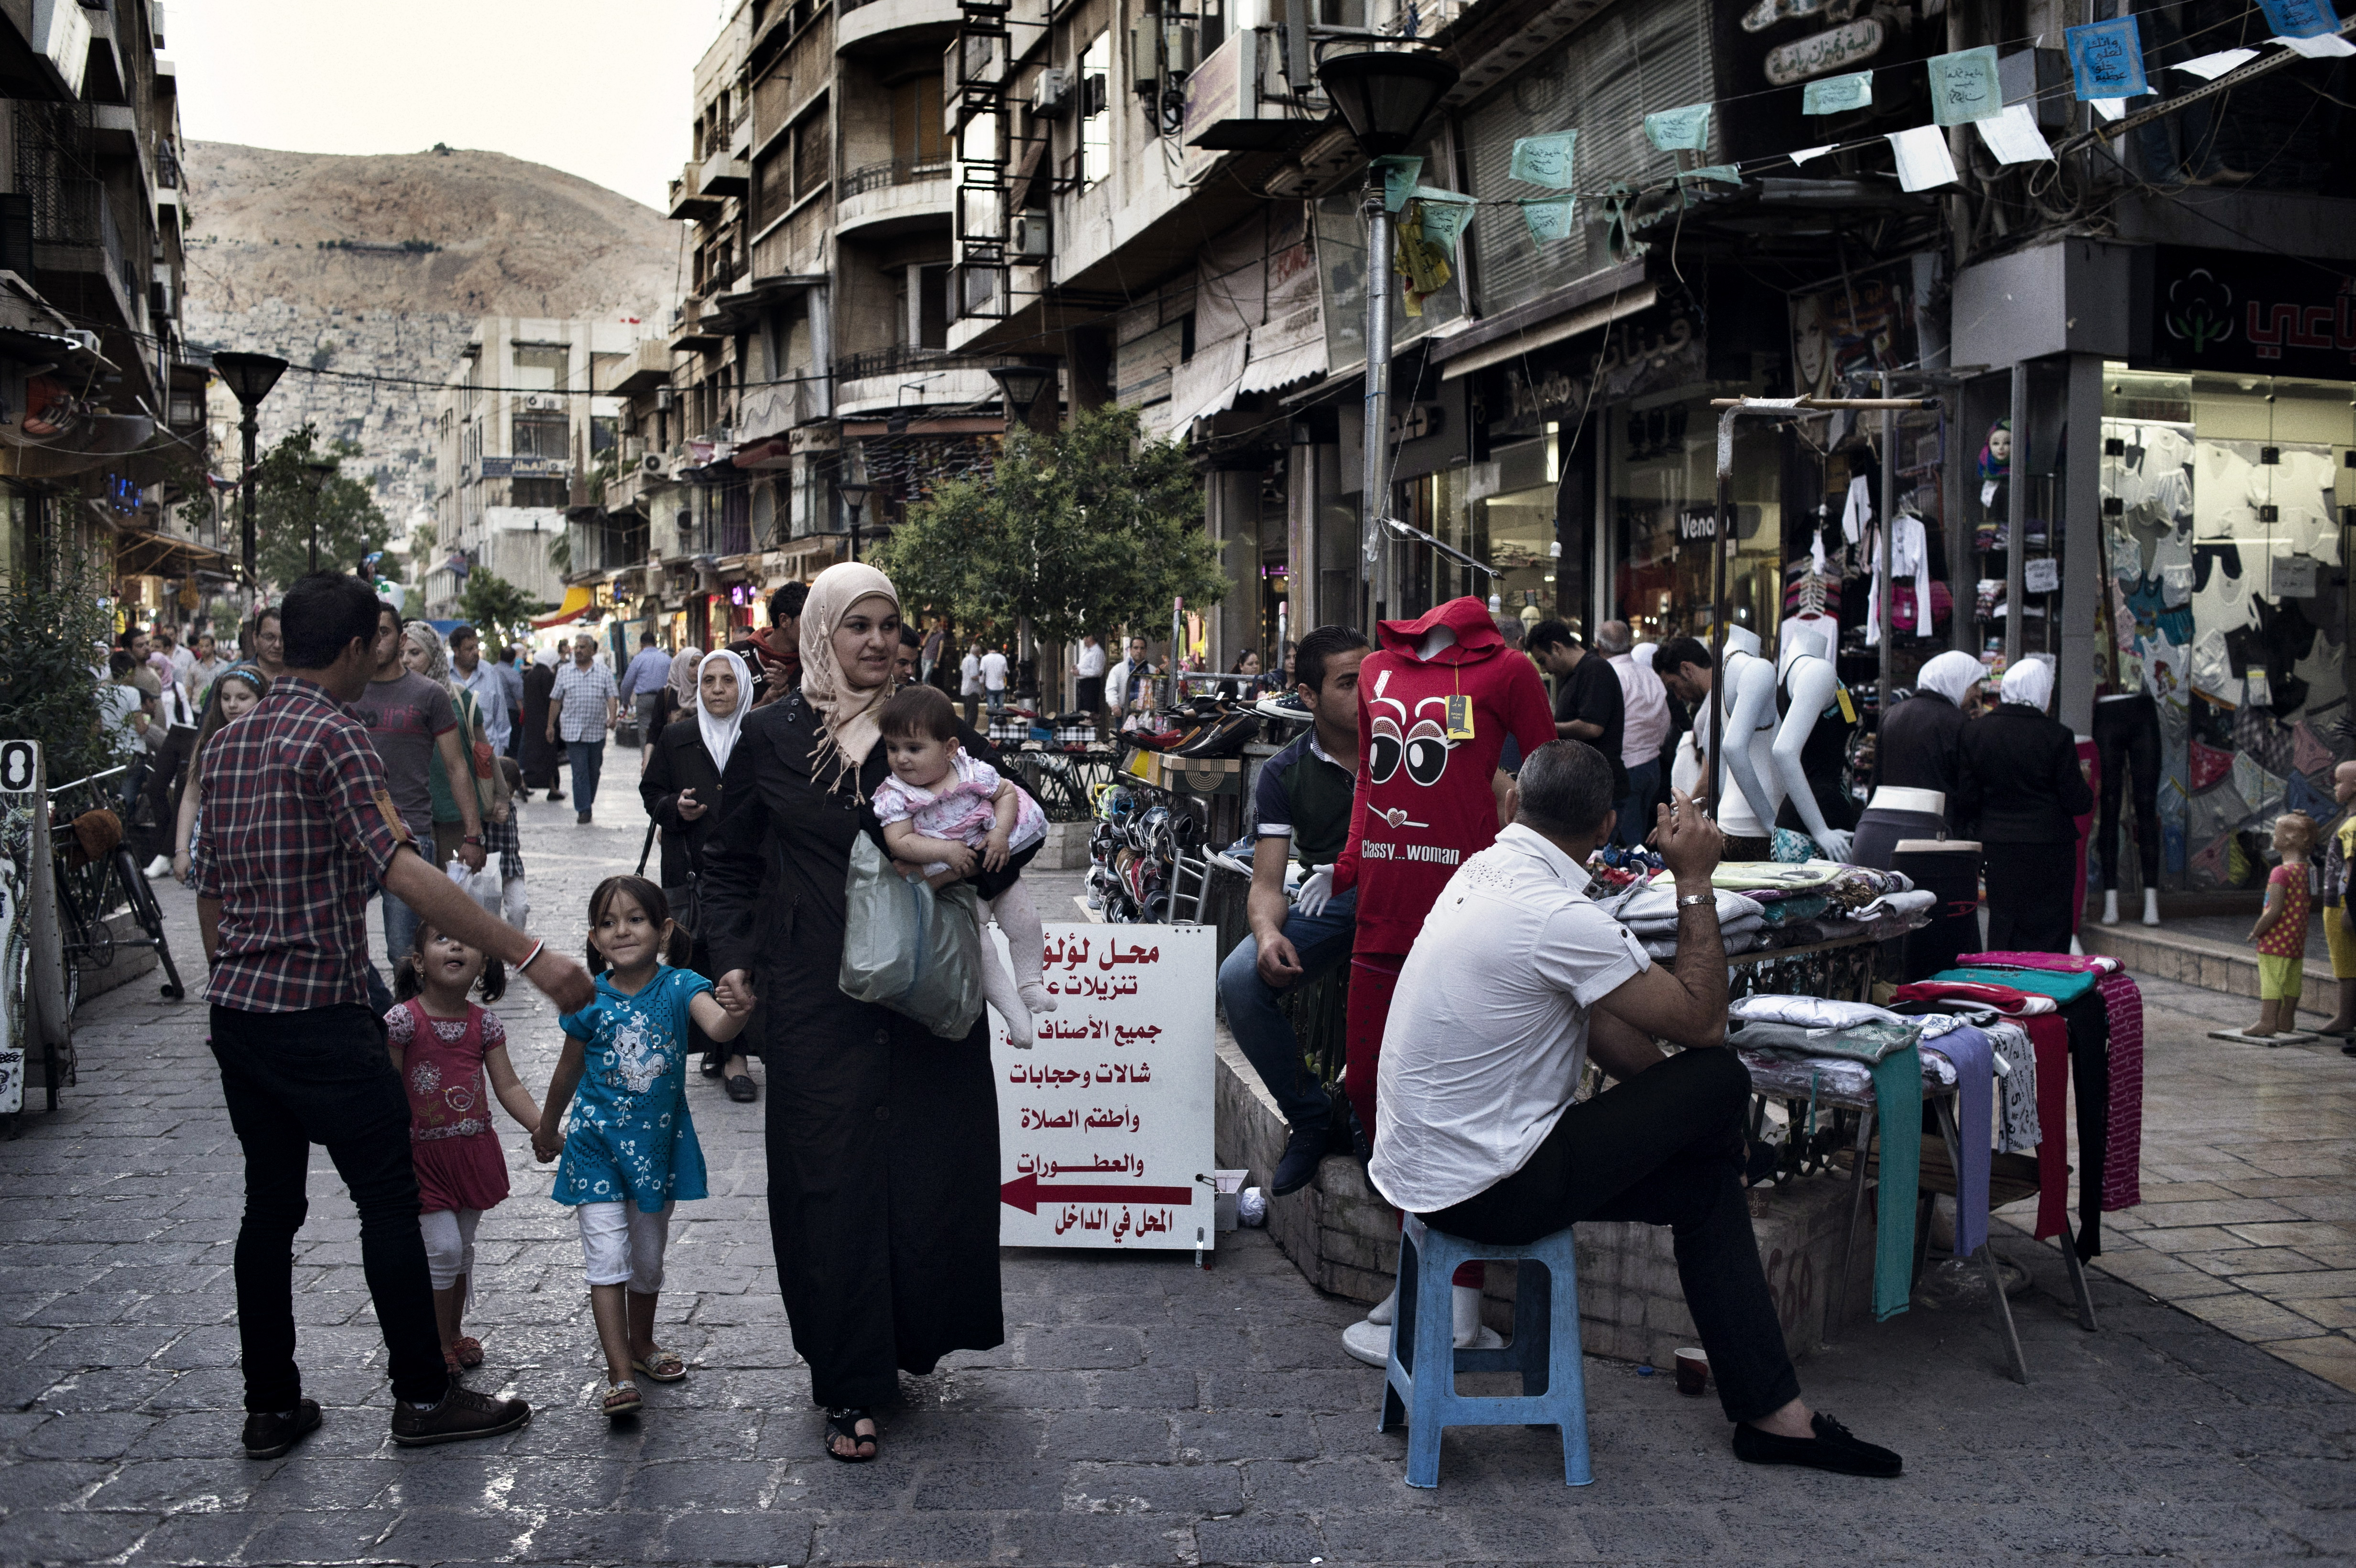 A family walks down a street in Damascus on May 14, 2014.